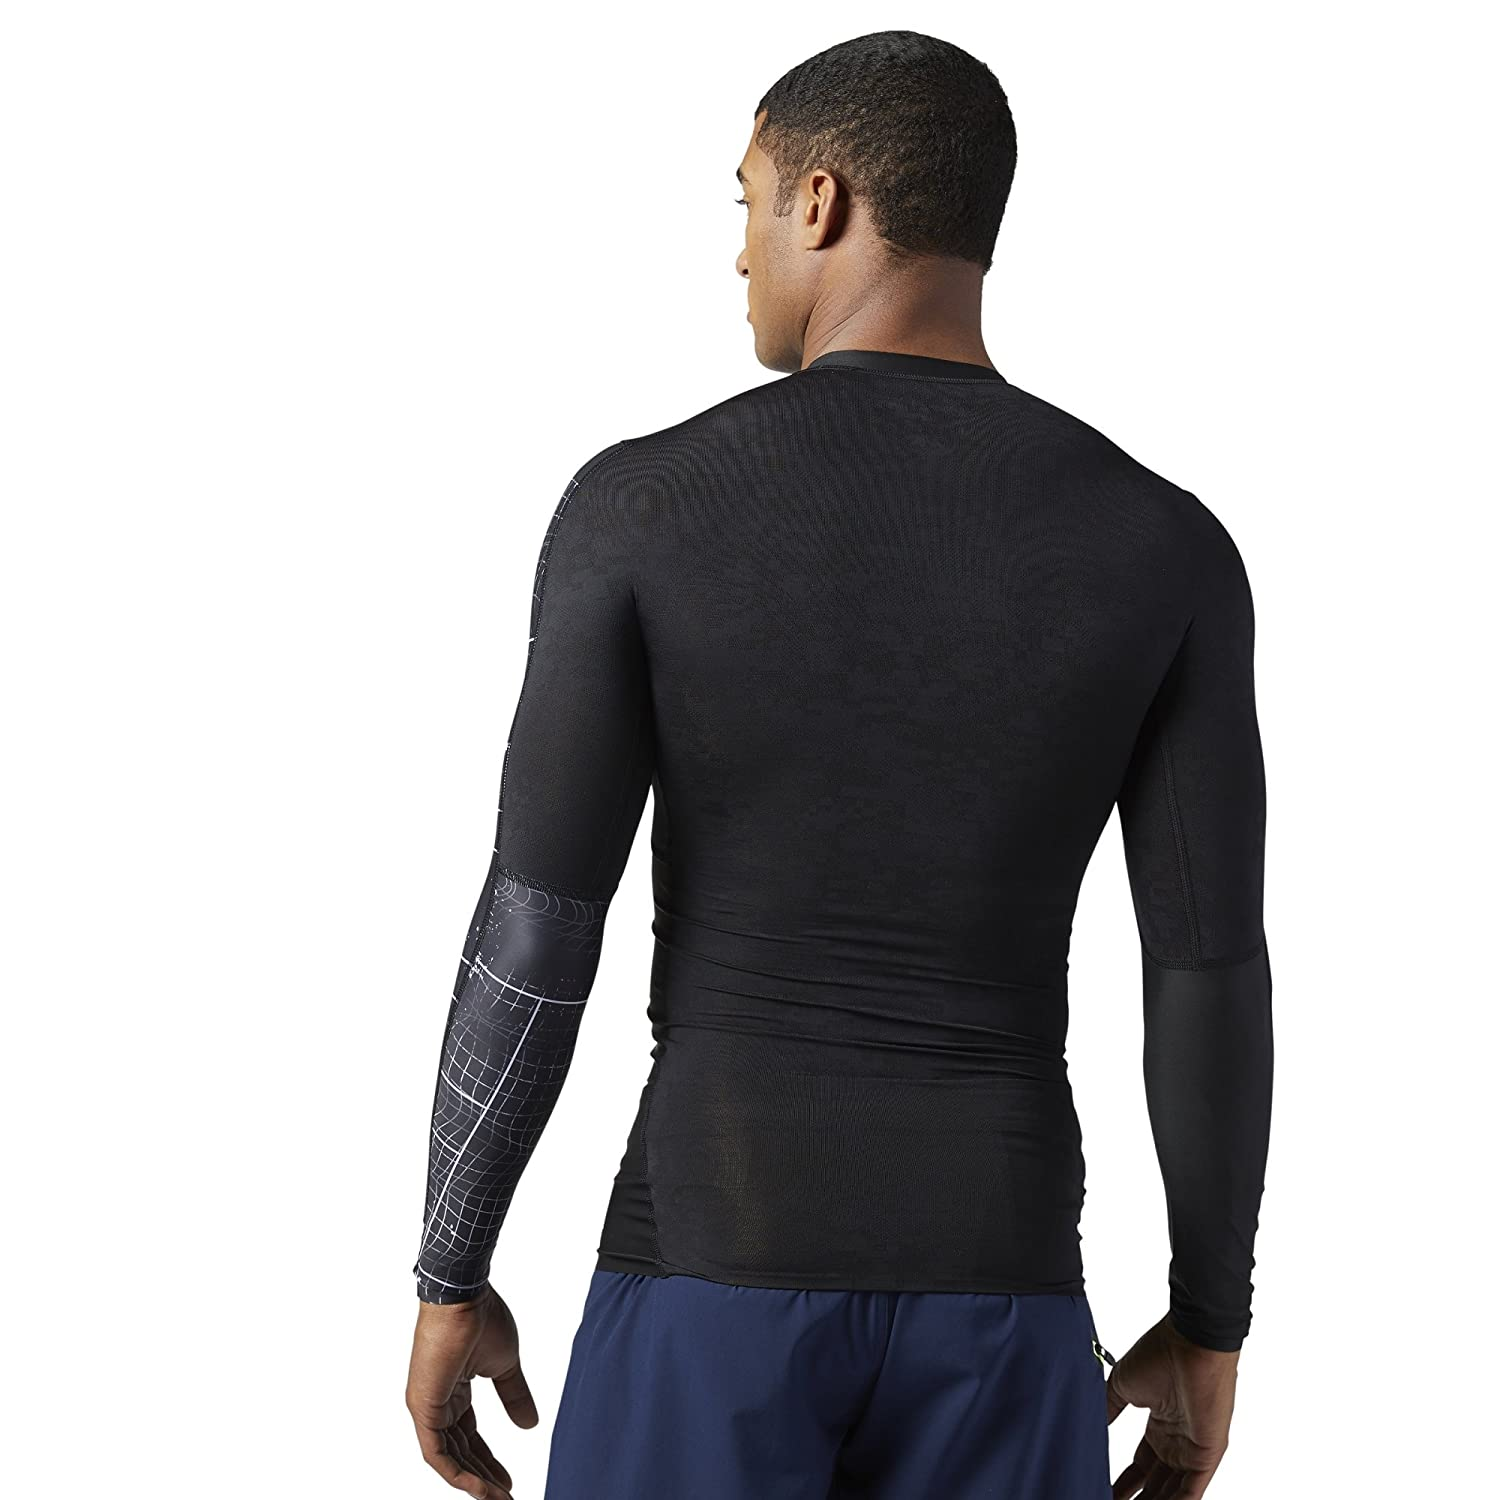 Reebok Mens Crossfit Compression Long Sleeve Tee